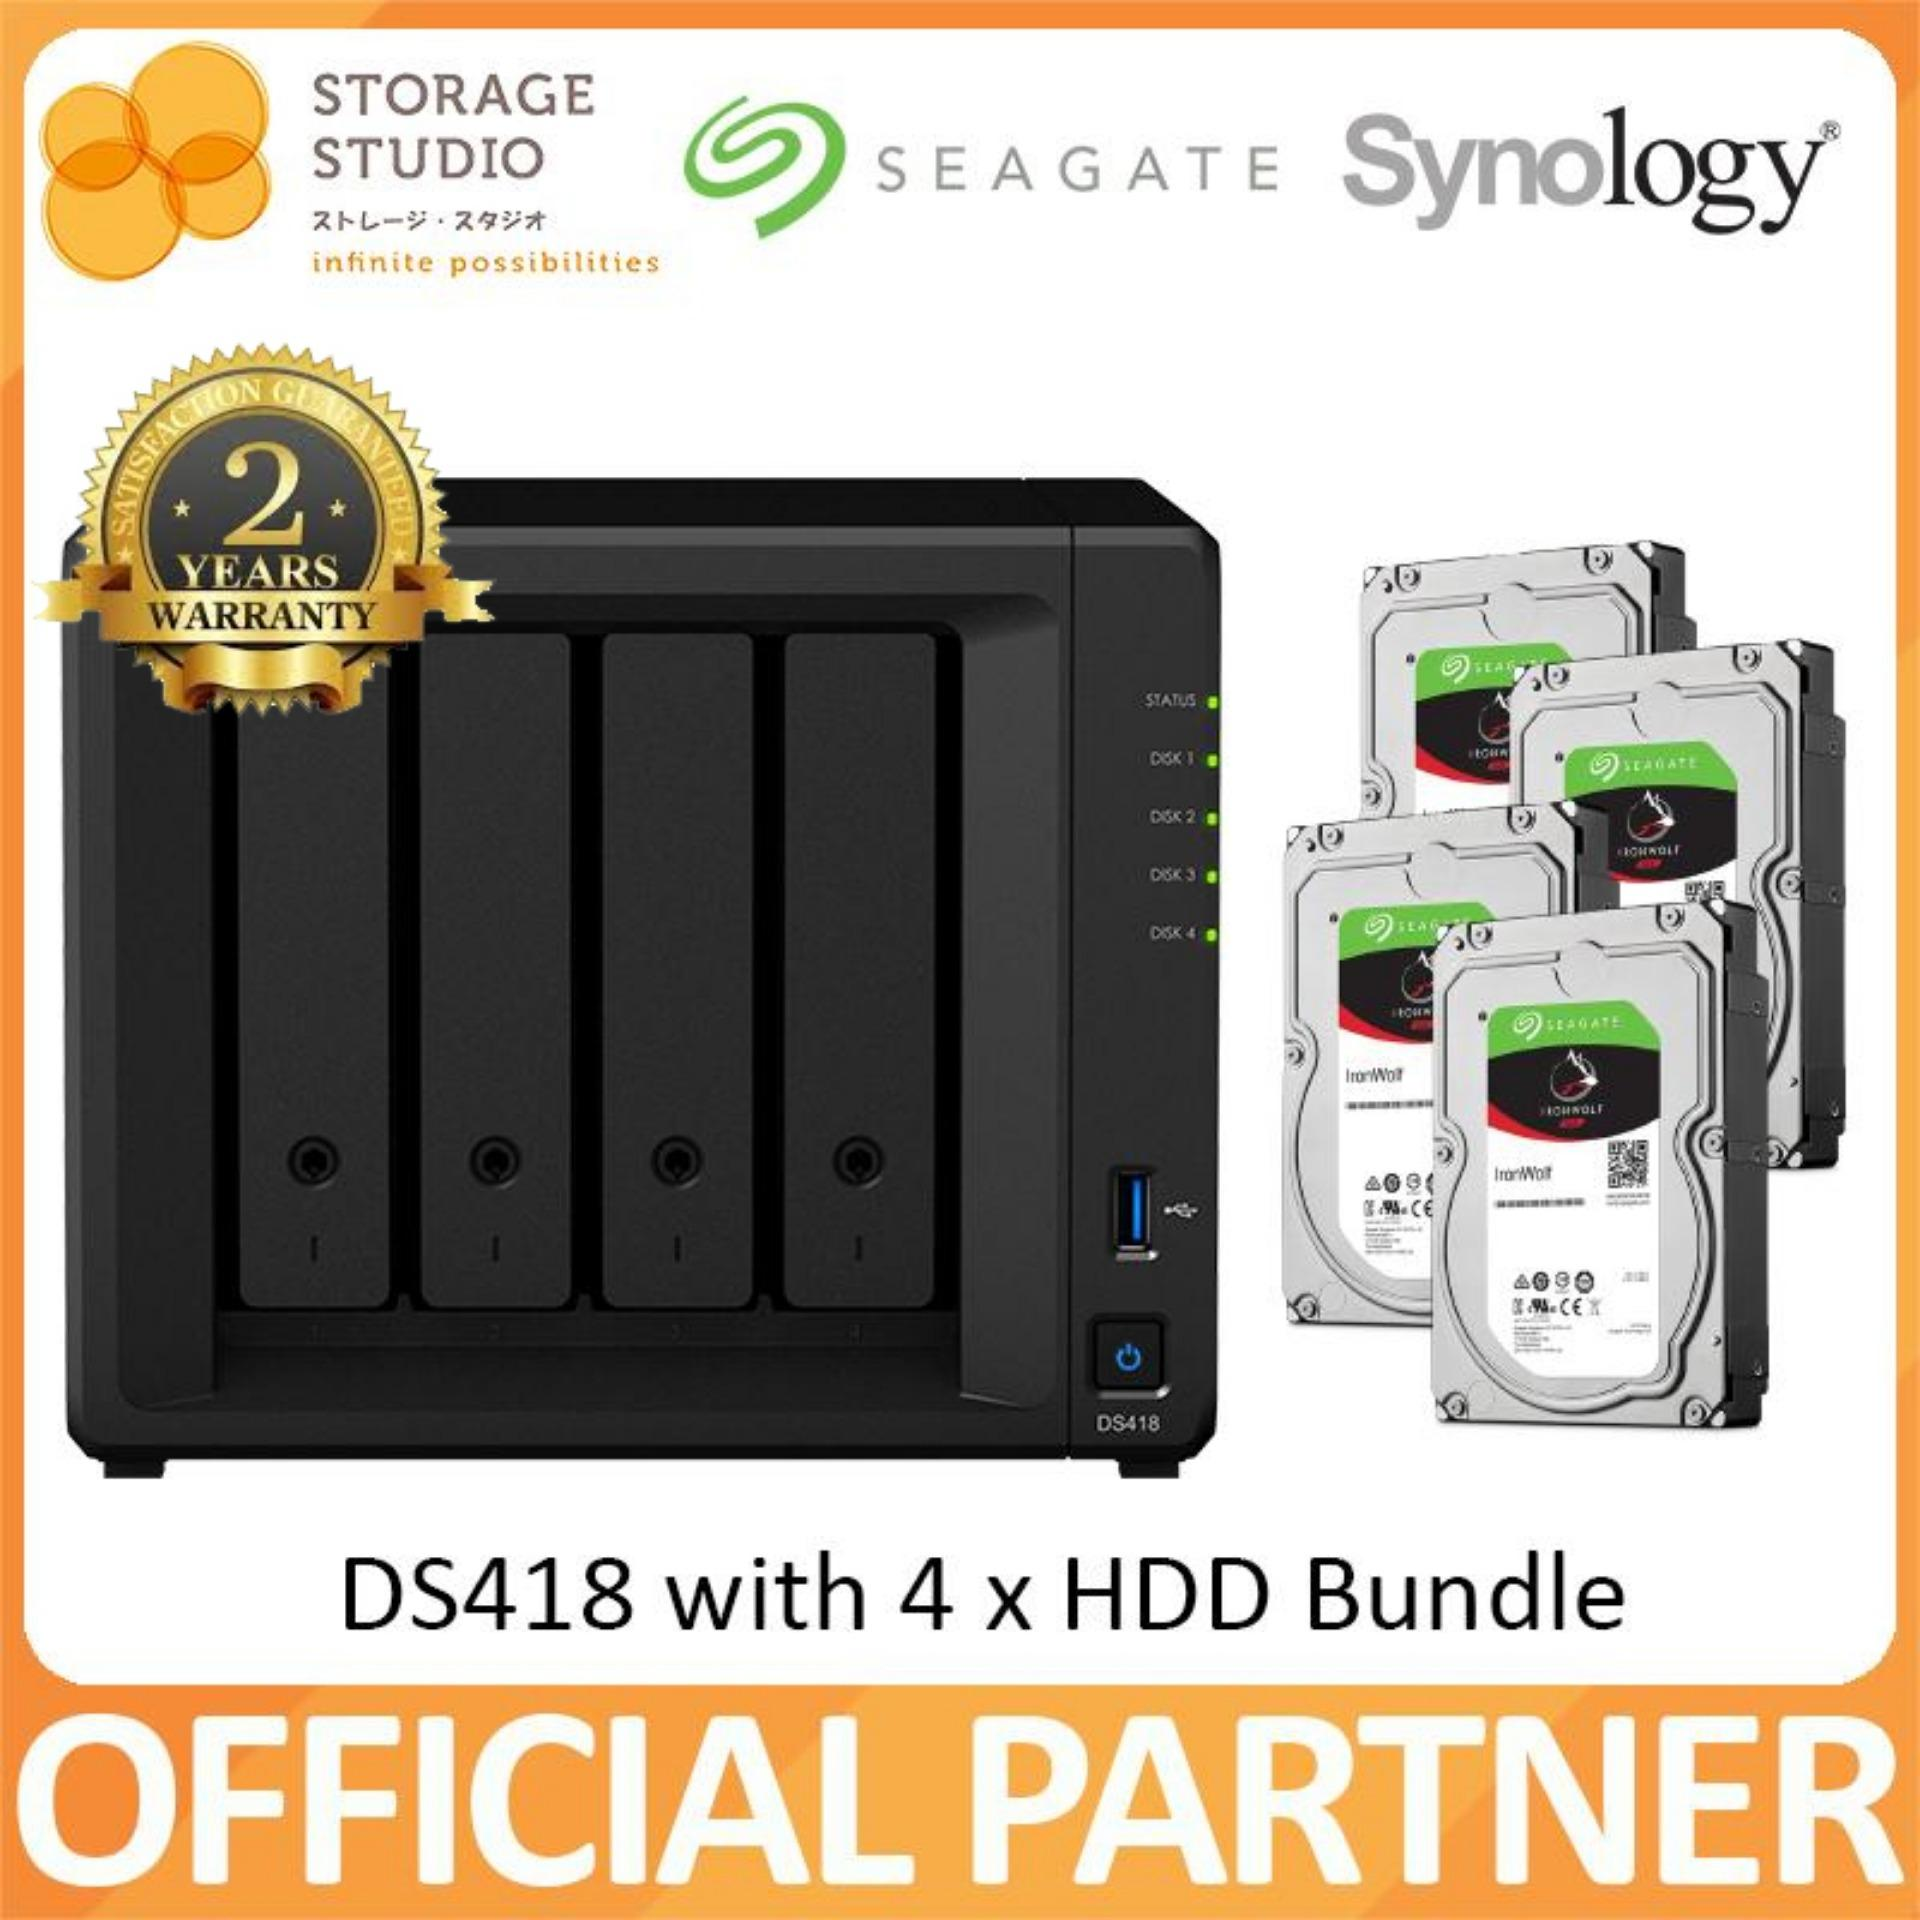 SYNOLOGY NAS DS418 4 BAY NAS (4 x Seagate Ironwolf (2TB/3TB/4TB) HDD Bundle  Series)  Warranty: 2 years  Local Warranty  ** SYNOLOGY Official Partner**